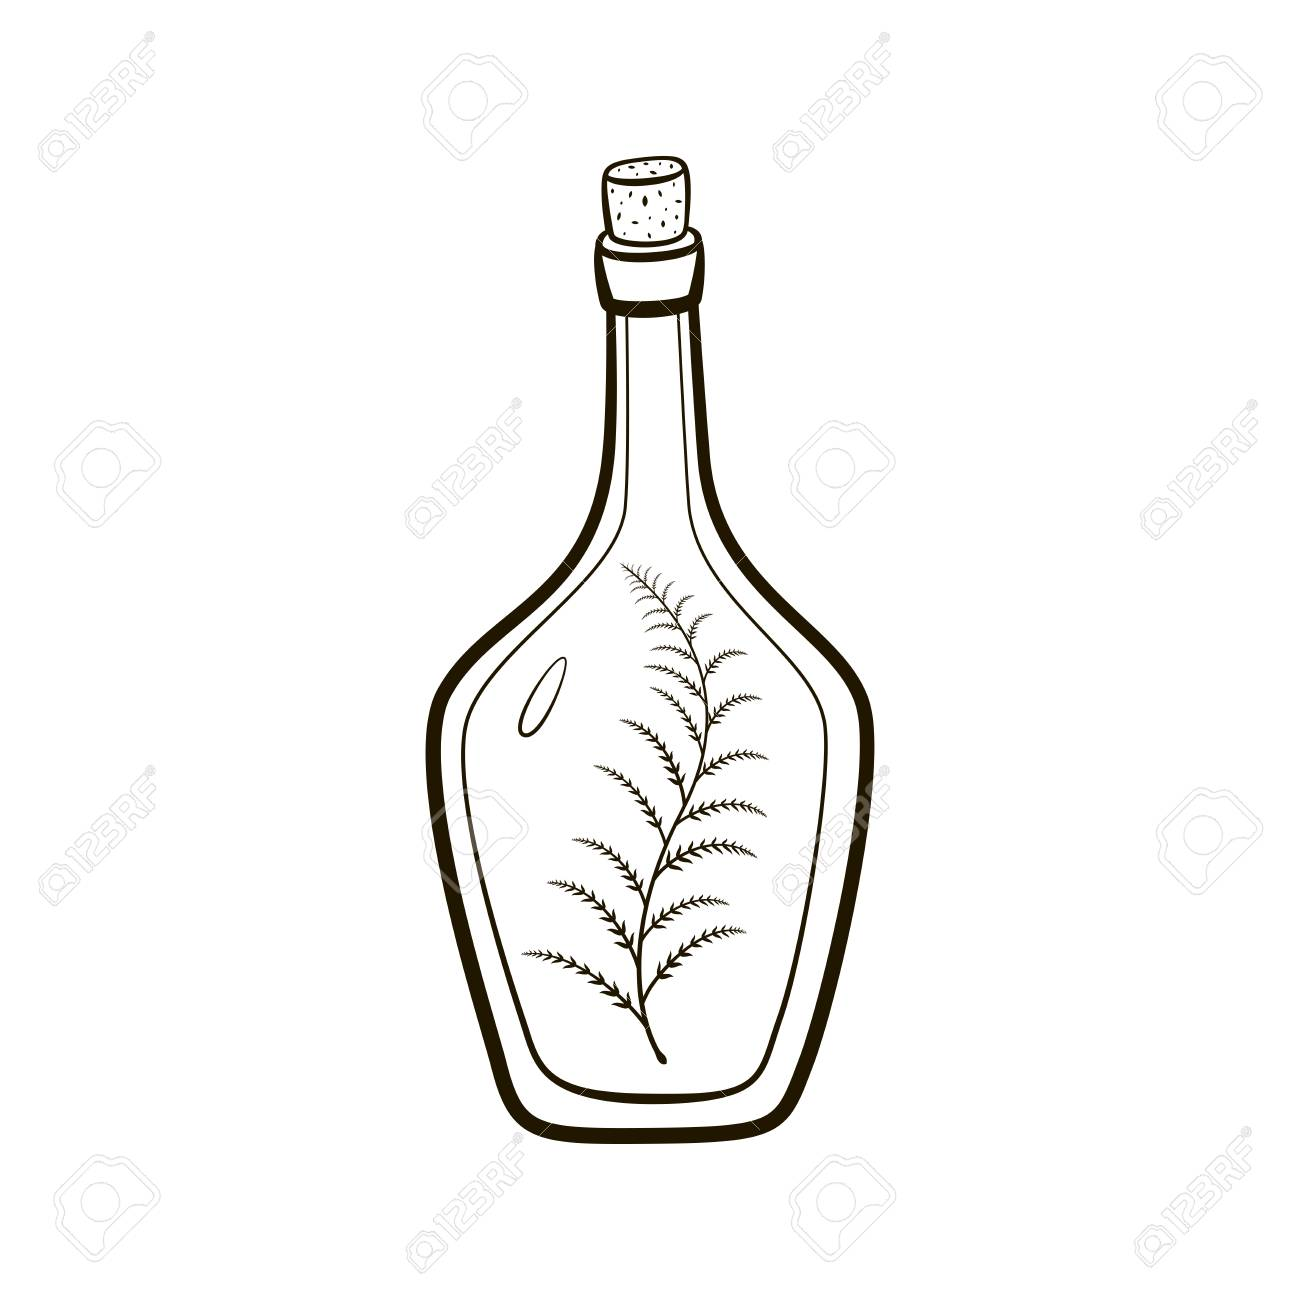 1300x1300 Vintage Bottle With Sprig Inside Hand Drawing Illustration